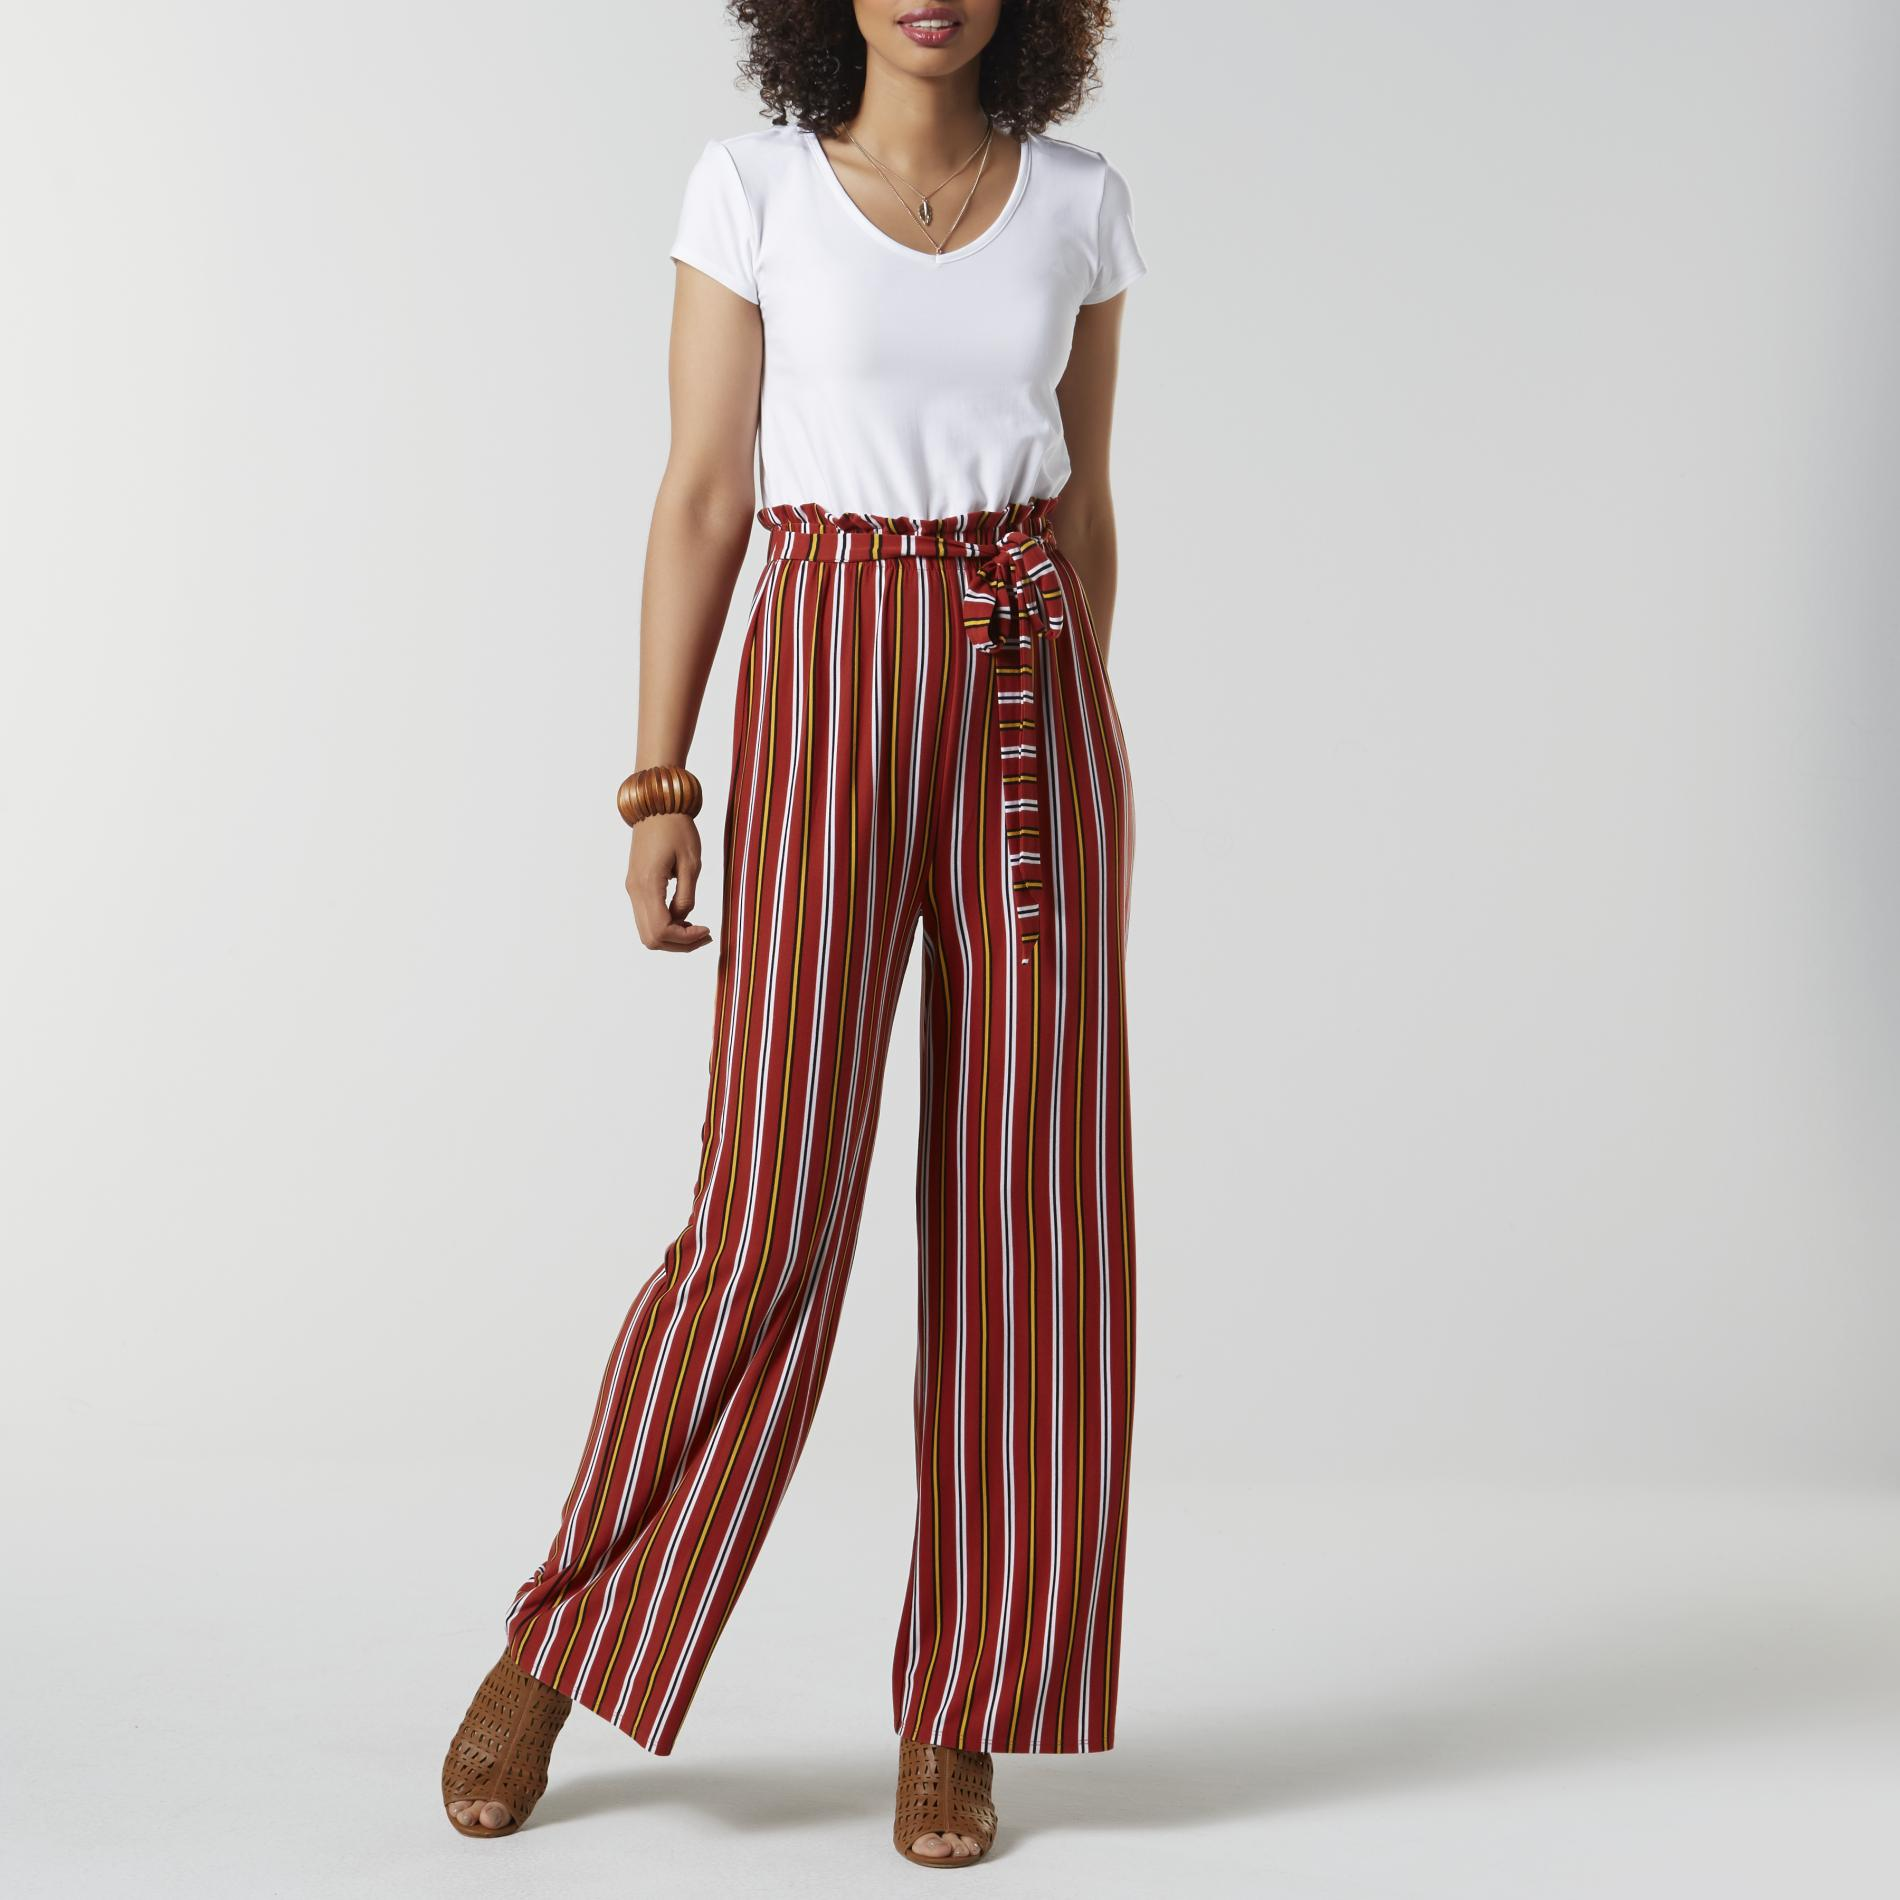 Juniors' Jumpsuit - Striped, Size: Small, Red Brown